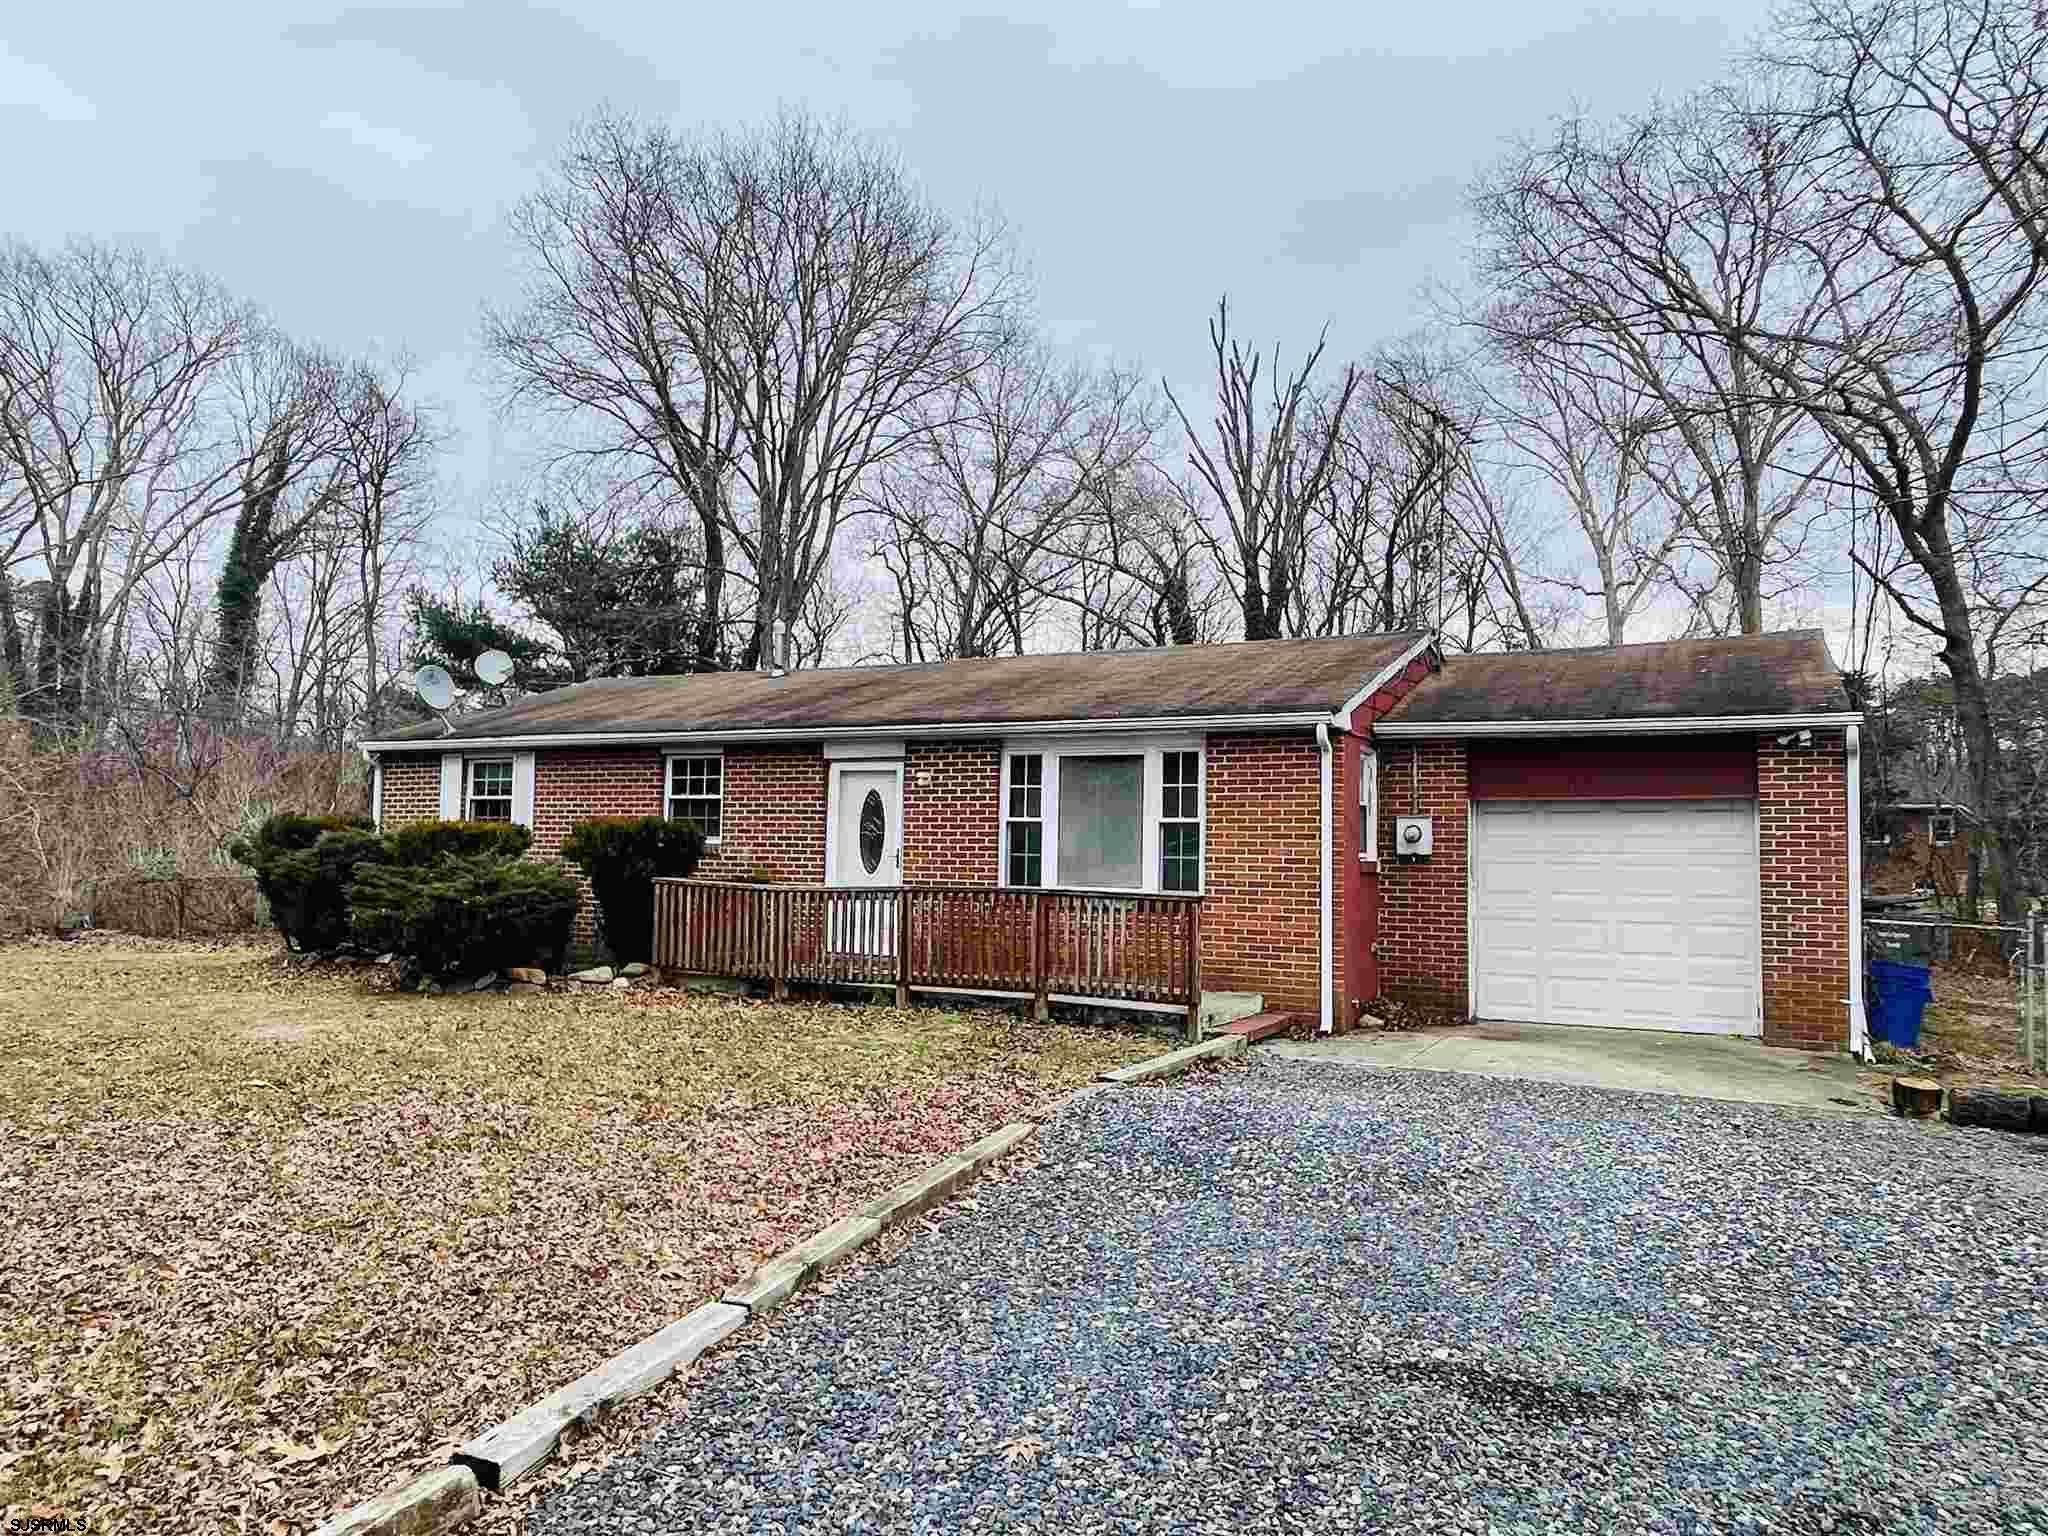 START SMART WITH THIS FABULOUS BRICK FACED RANCHER!  Clean and neat and so close to the Expressway and Garden State Parkway, making for an easy commute to the AC night life, the beaches and boardwalk.  Laminate flooring throughout makes it super easy to maintain.  The bathroom has been updated with a new tub-surround, vanity top and flooring. The formal dining room provides great space for your evening meals or set up a table in the well sized kitchen for a quick bite.  Off of the kitchen is a bonus utility room where the laundry center is housed along with the water holding tank (well water) plus there is still a partial garage for all your excess storage.  Step out of the kitchen into a well sized rear fenced yard with plenty of space for